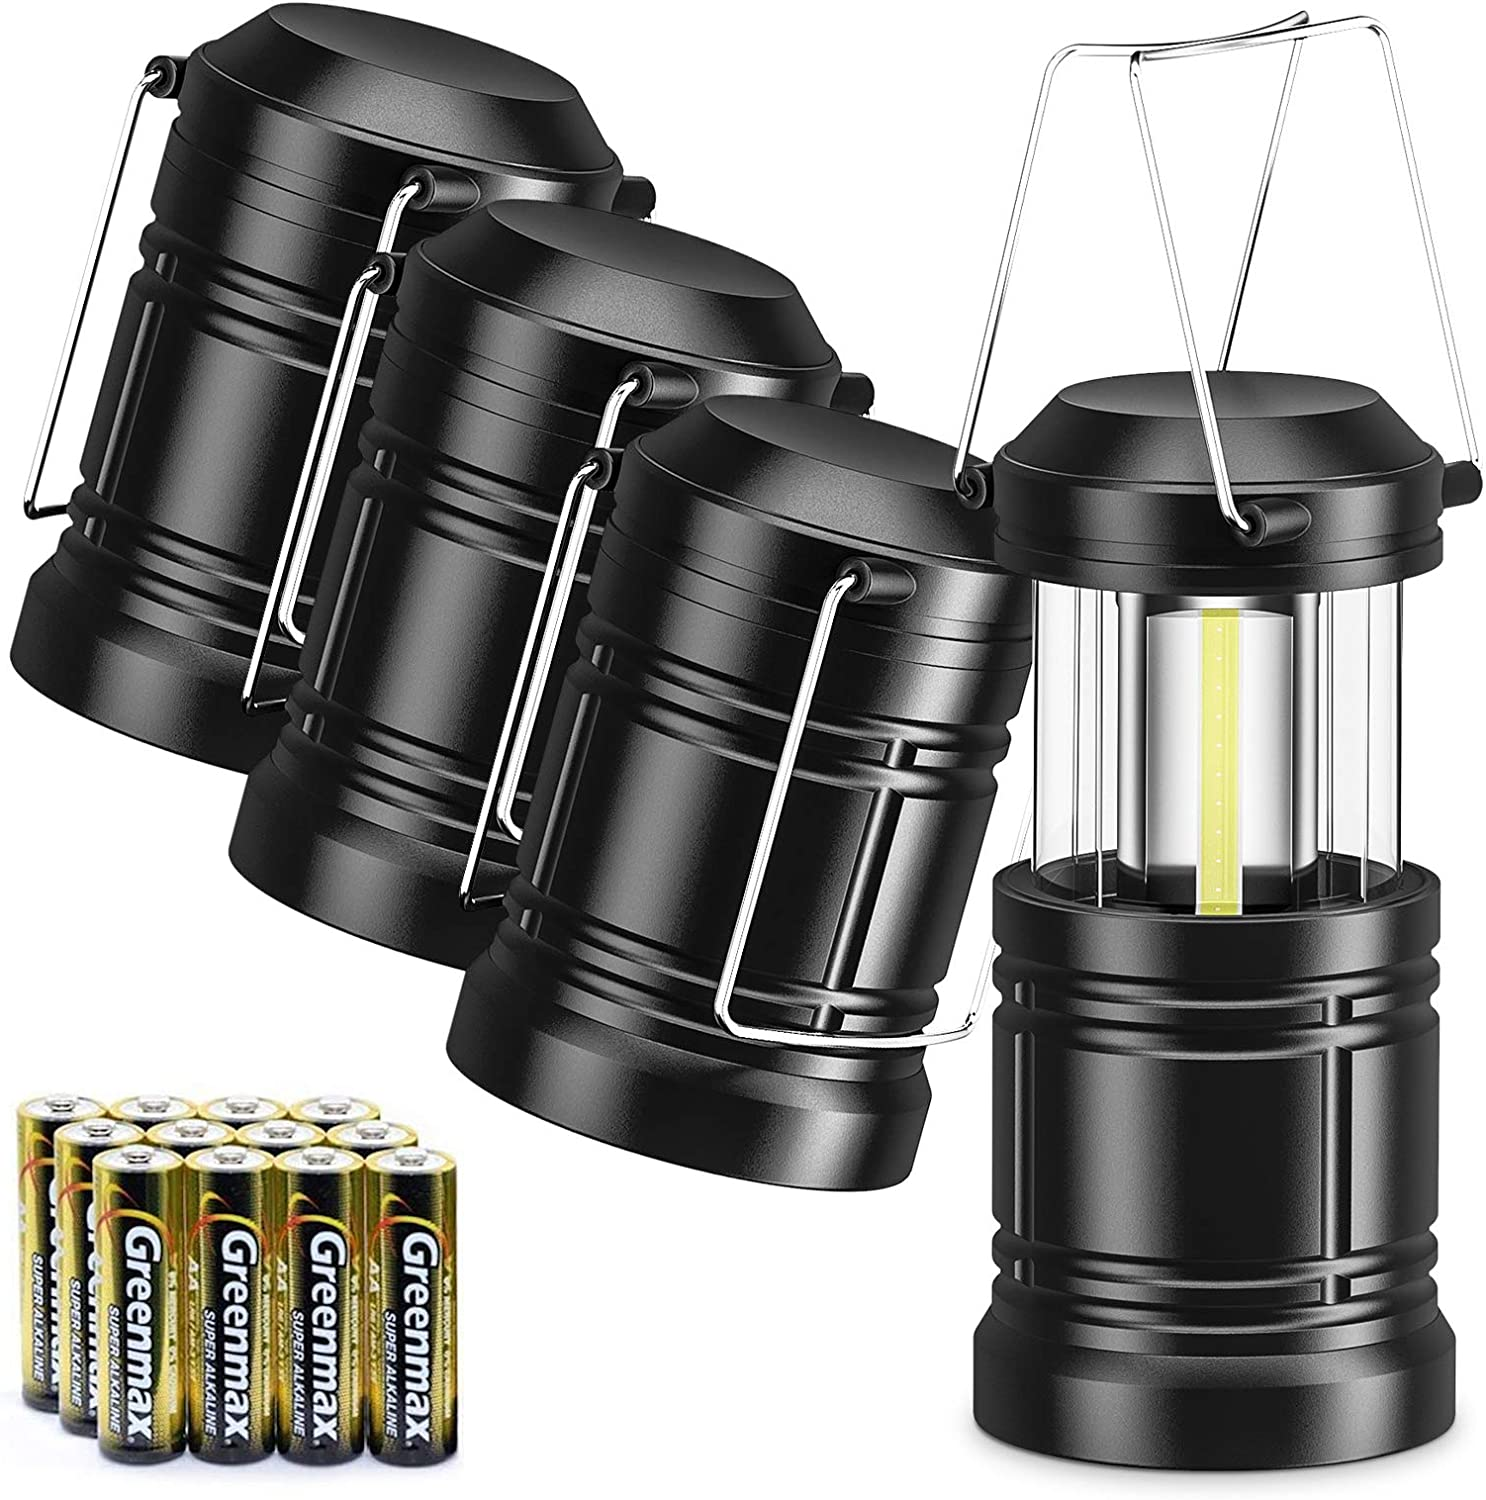 WdtPro Manufacturer OFFicial shop 4 Pack LED Max 62% OFF Camping Lantern 12 Batteries Powerful with AA